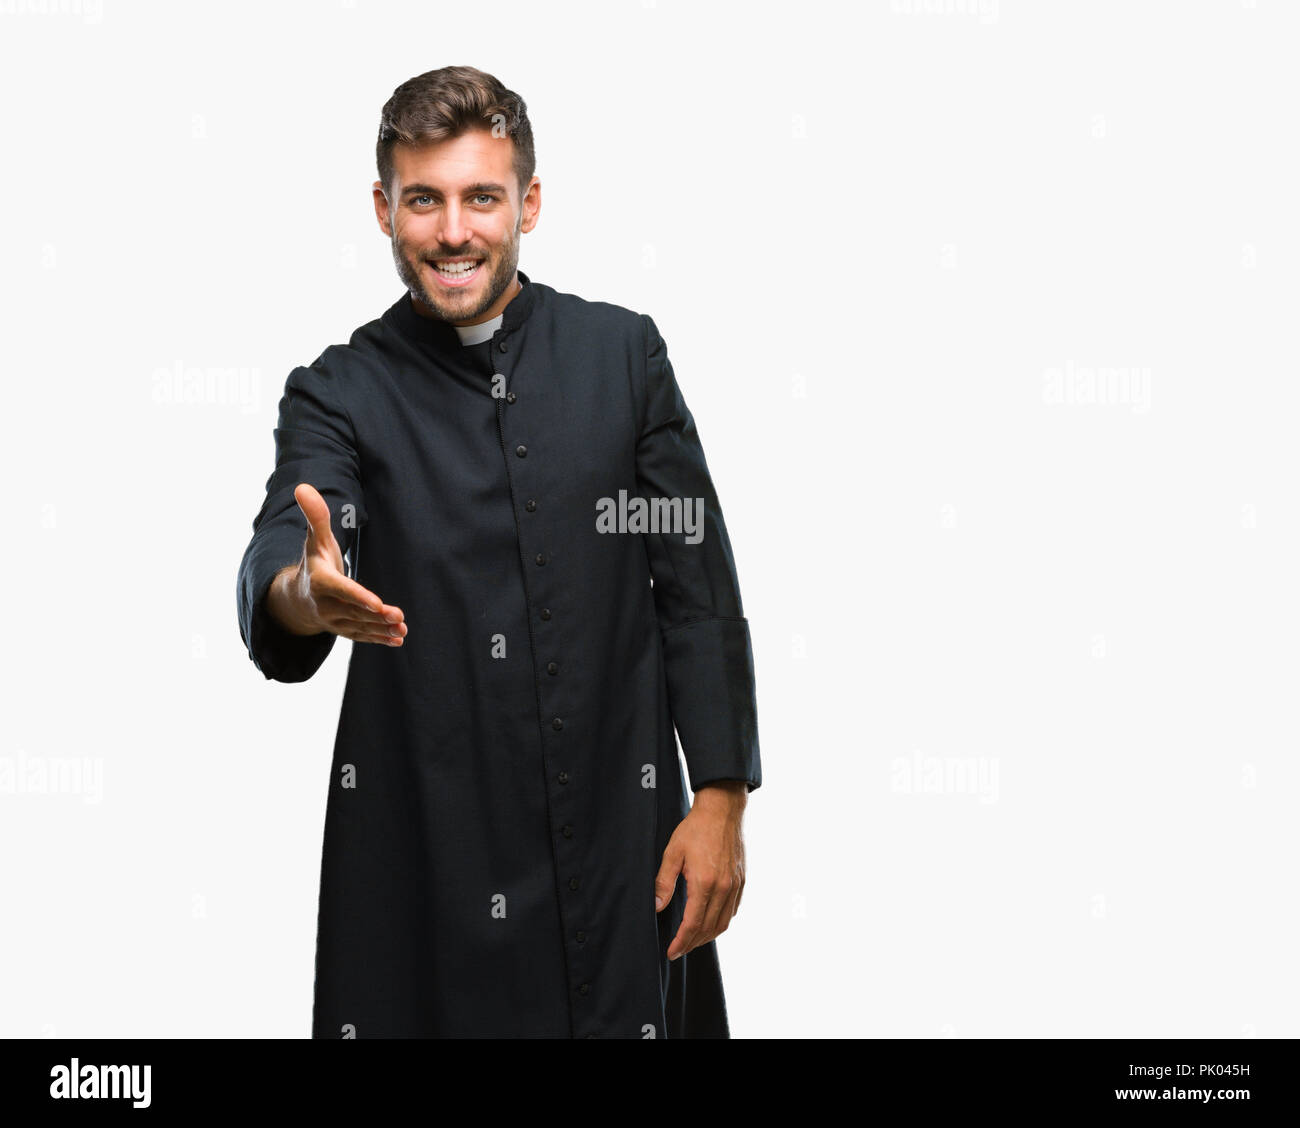 Young catholic christian priest man over isolated background smiling friendly offering handshake as greeting and welcoming. Successful business. - Stock Image